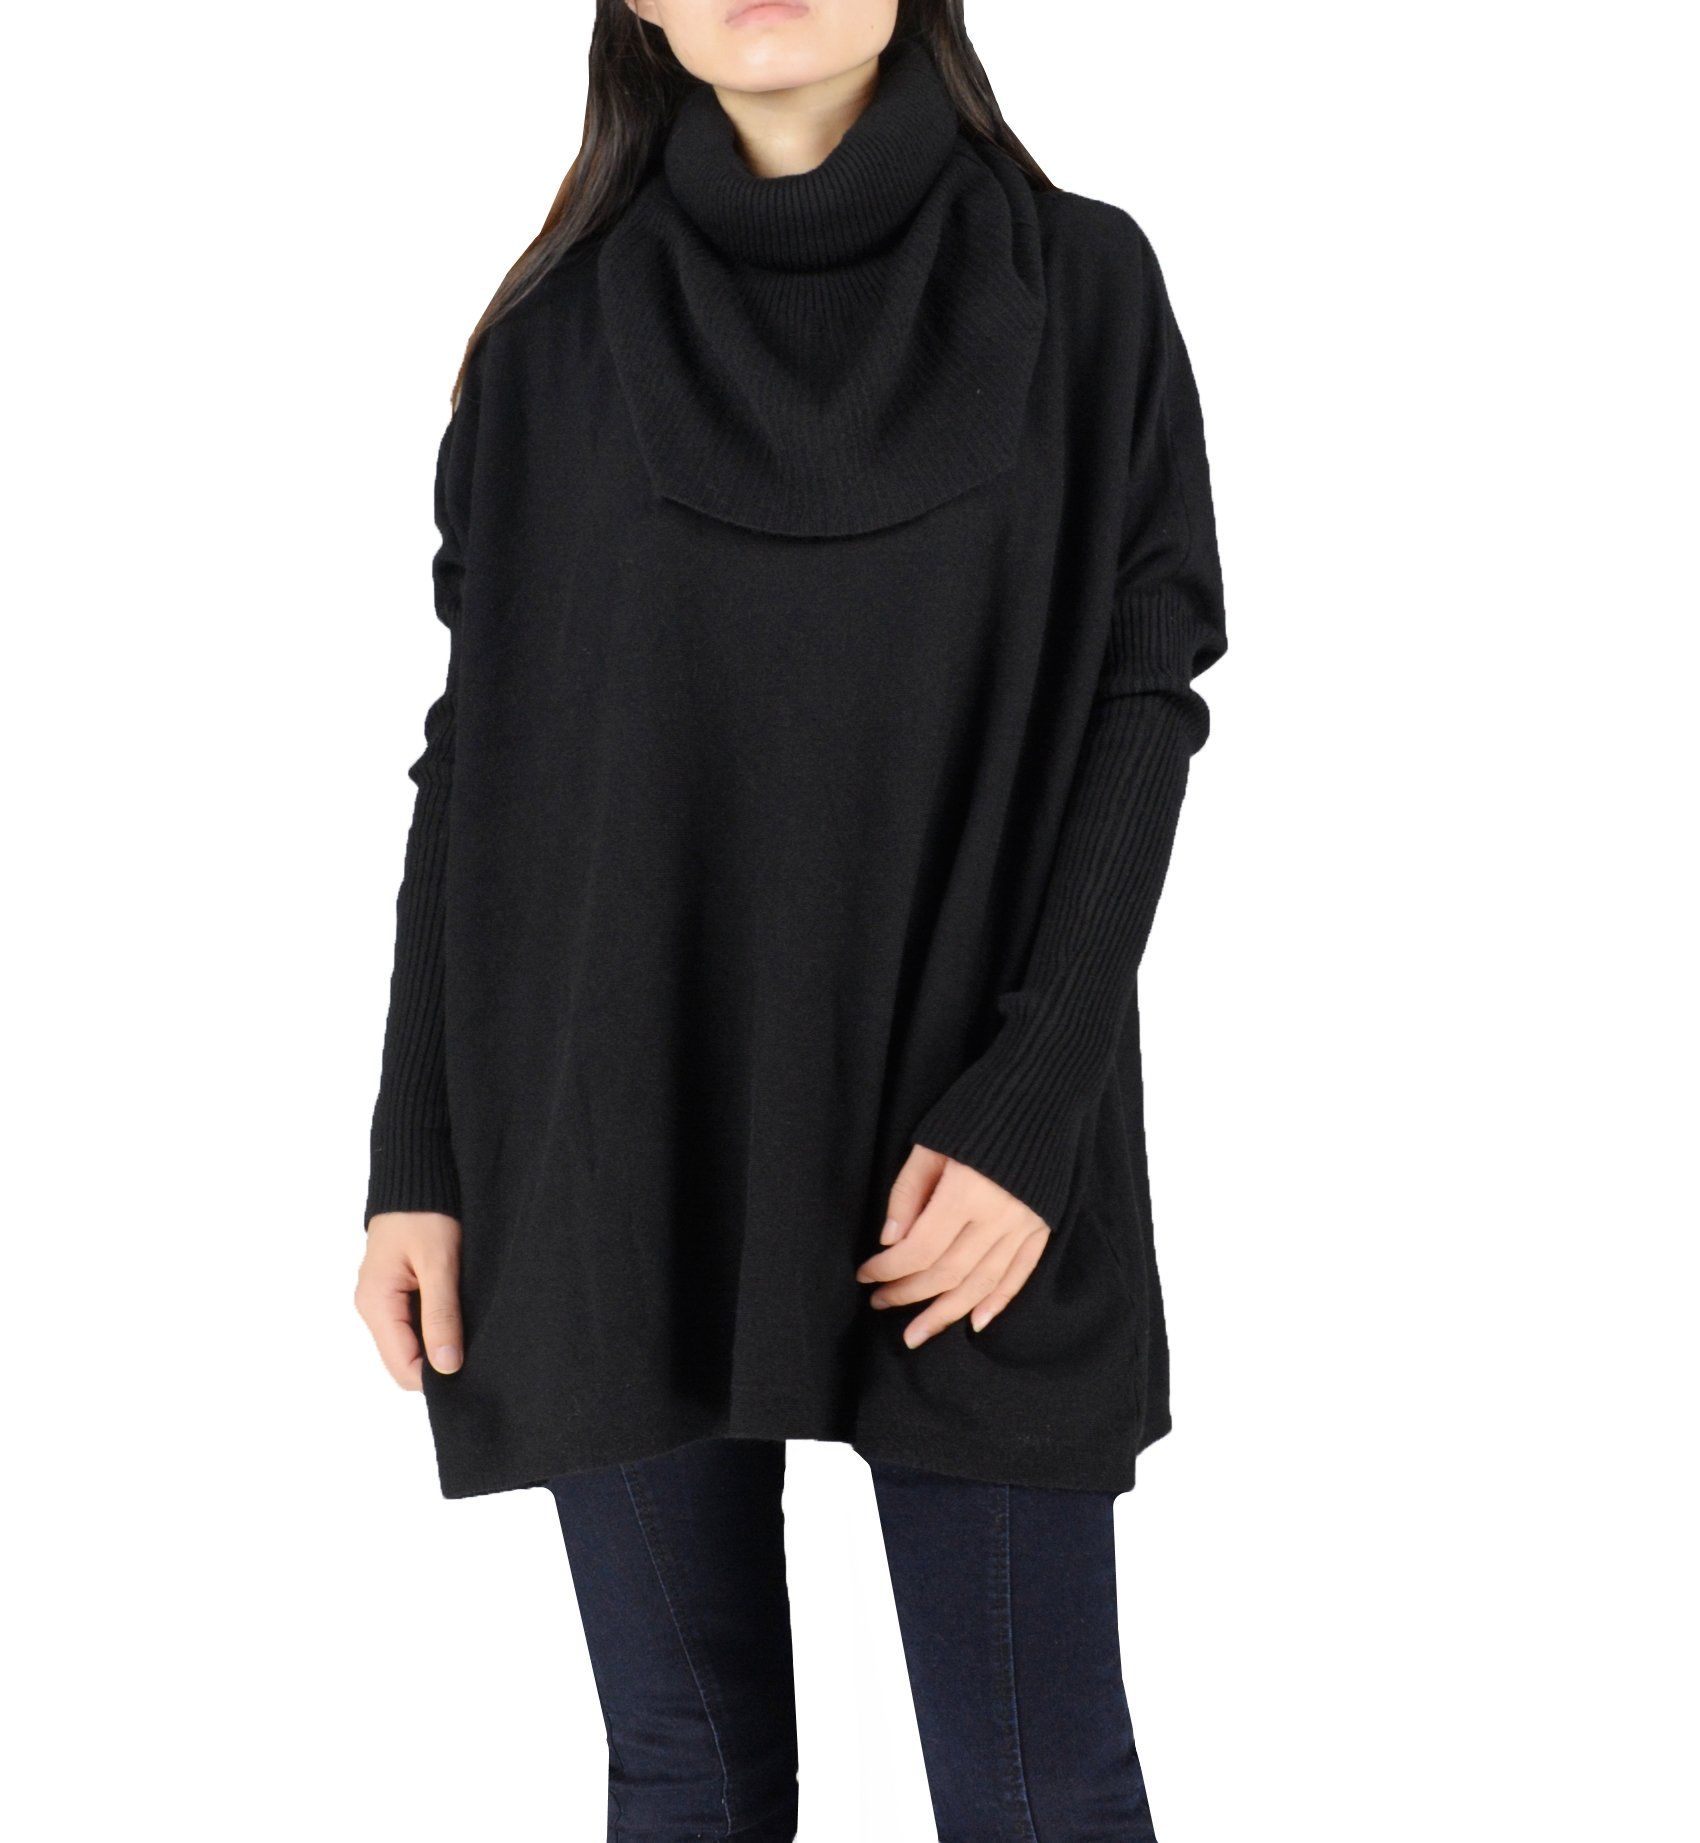 YSJ Womens Oversized Turtleneck Long Sleeve Knit Pullover Sweater Shirts (One Size, Black)